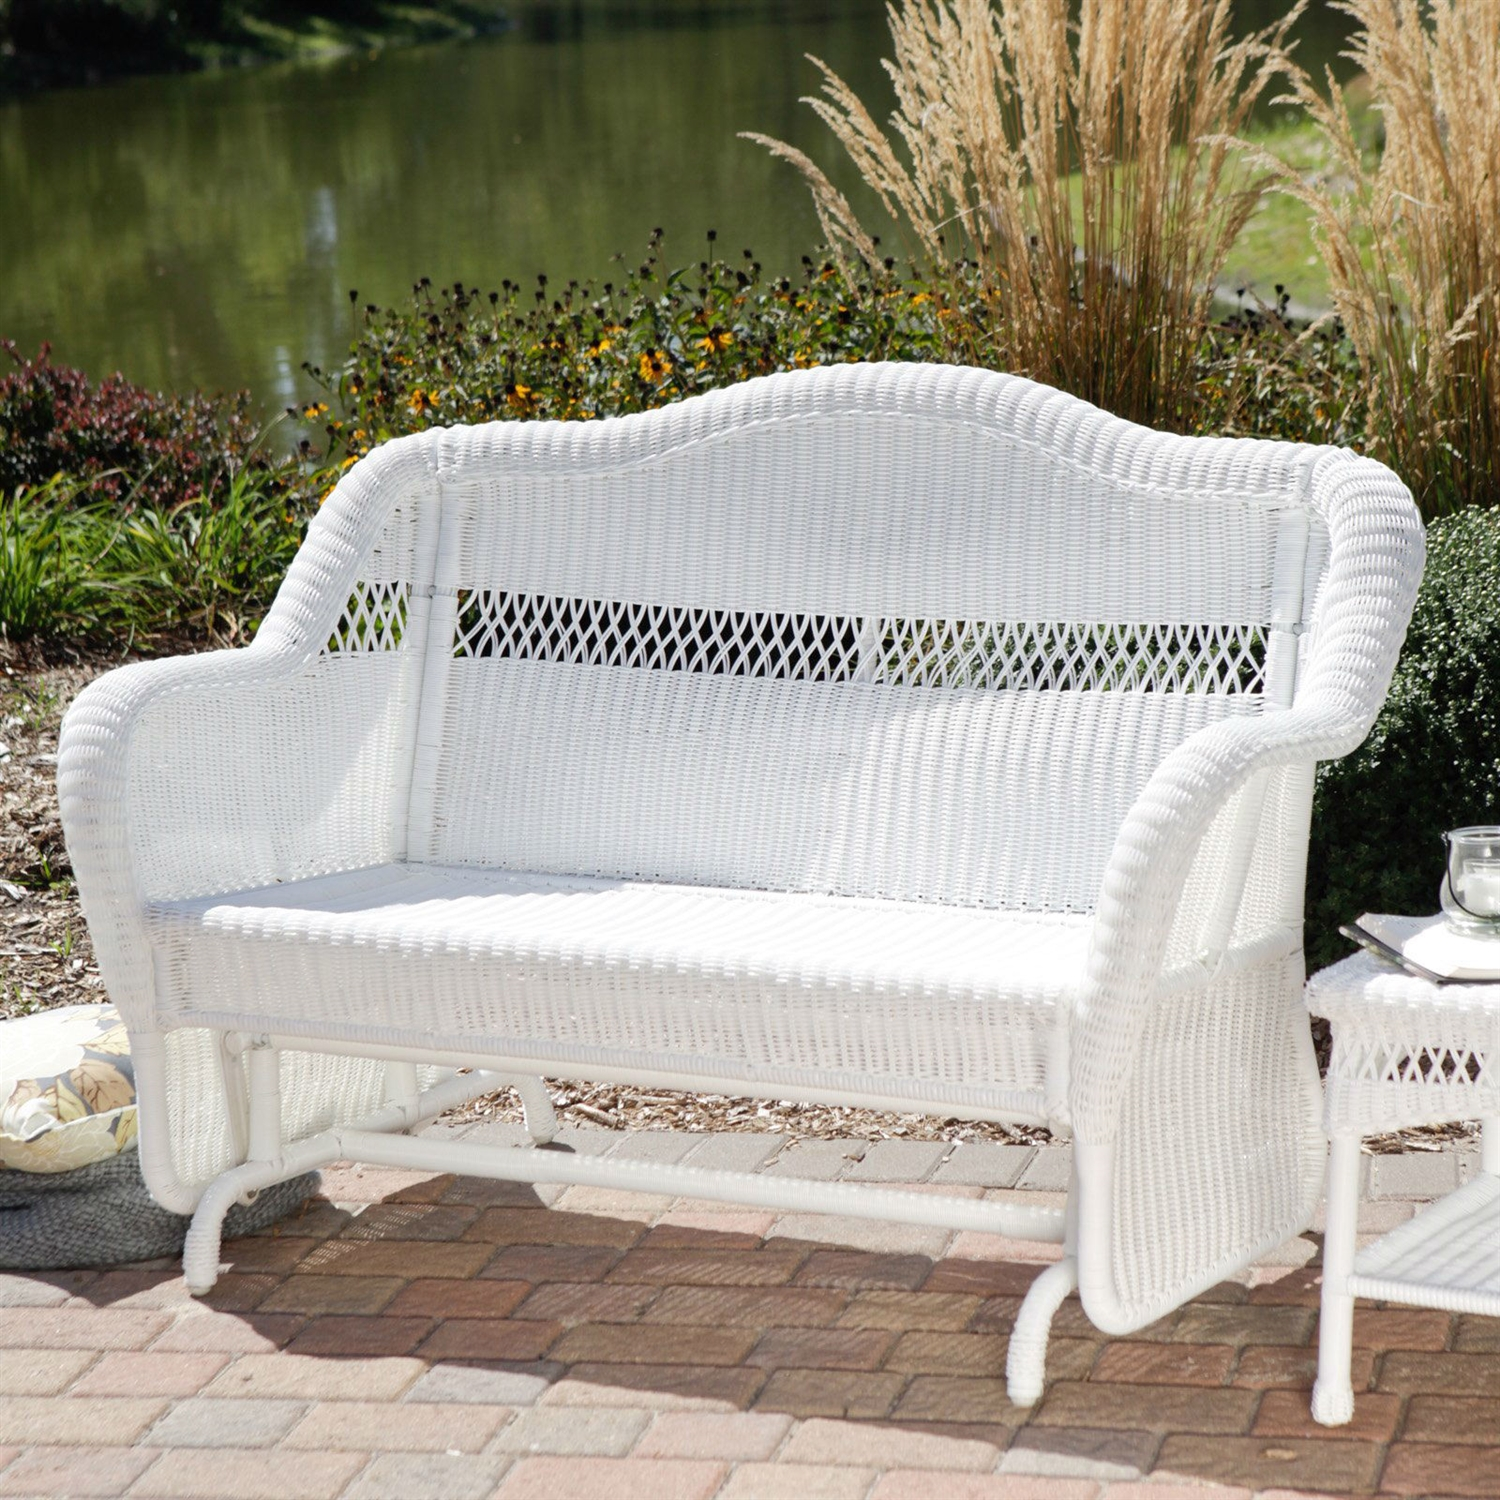 2 Person Rattan Love Sofa Set White Resin Wicker Outdoor 2 Seat Loveseat Glider Bench